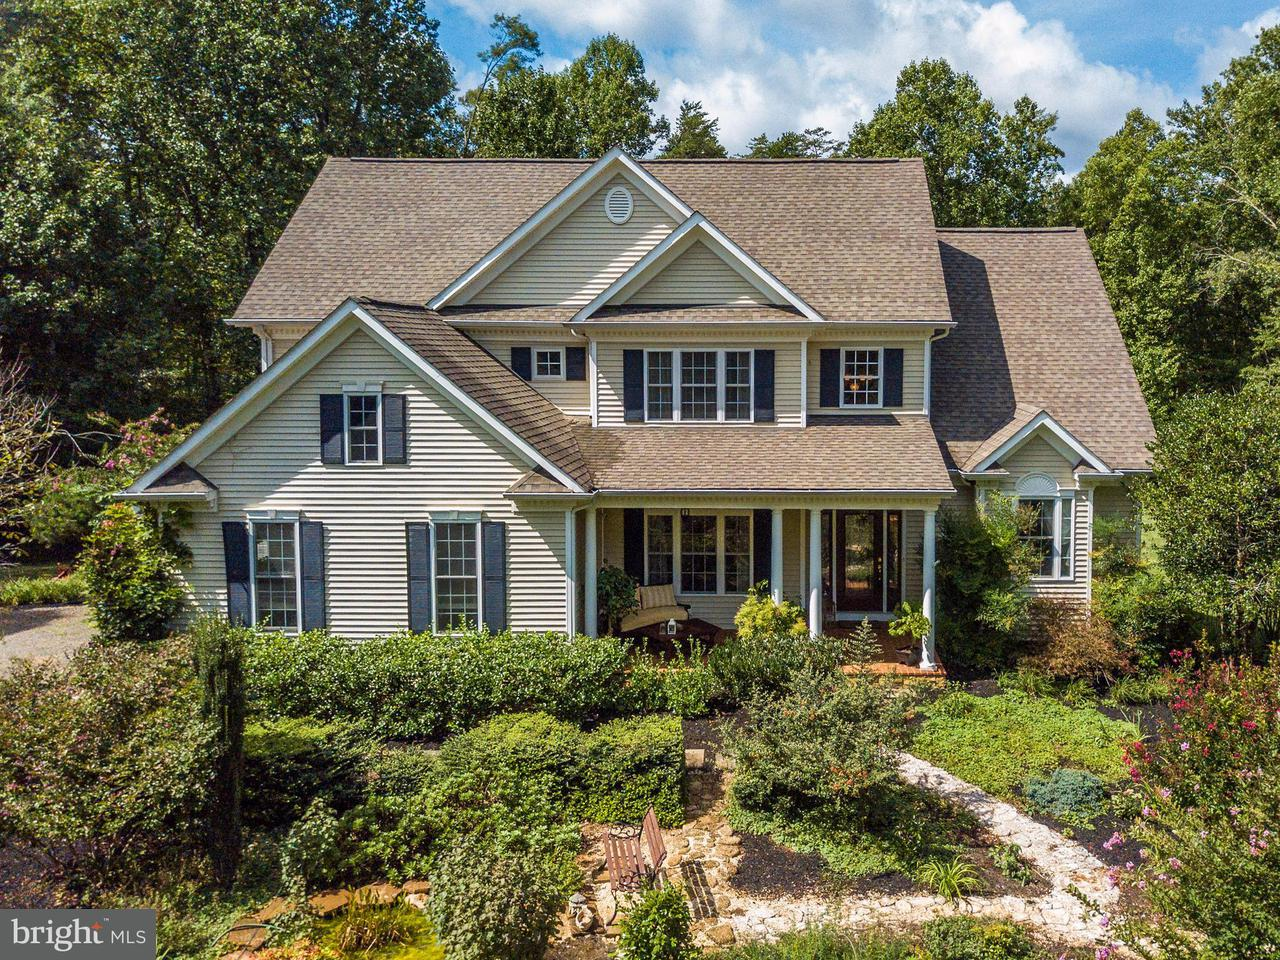 Single Family Home for Sale at 18377 DOGWOOD TRAIL Drive 18377 DOGWOOD TRAIL Drive Jeffersonton, Virginia 22724 United States